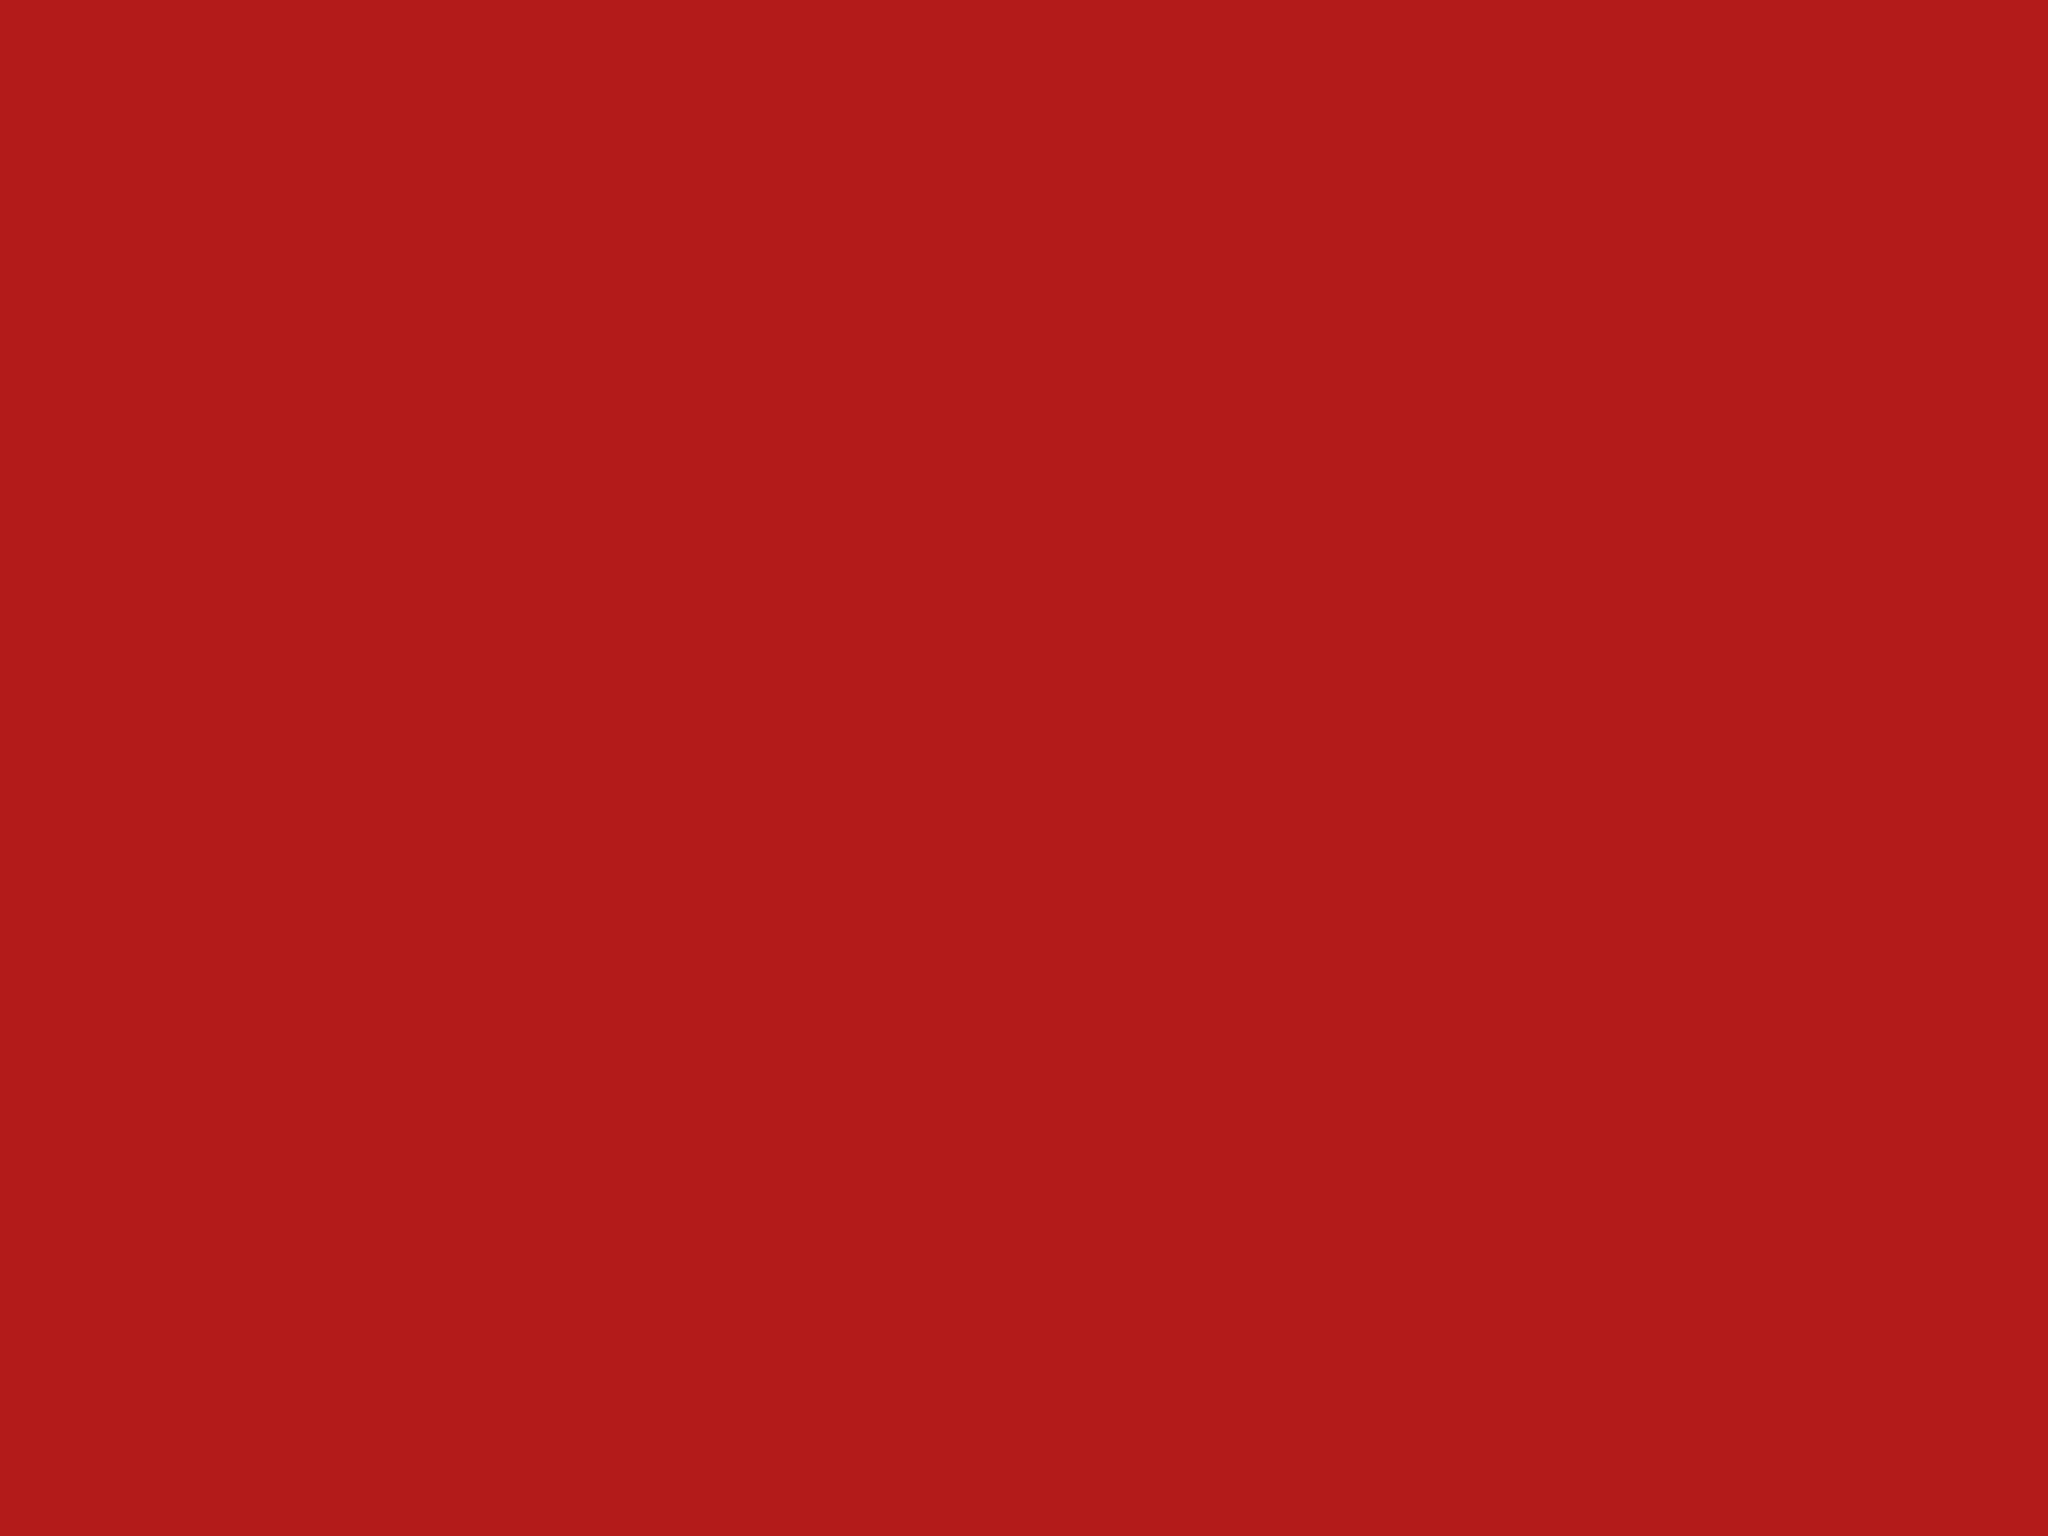 2048x1536 Cornell Red Solid Color Background